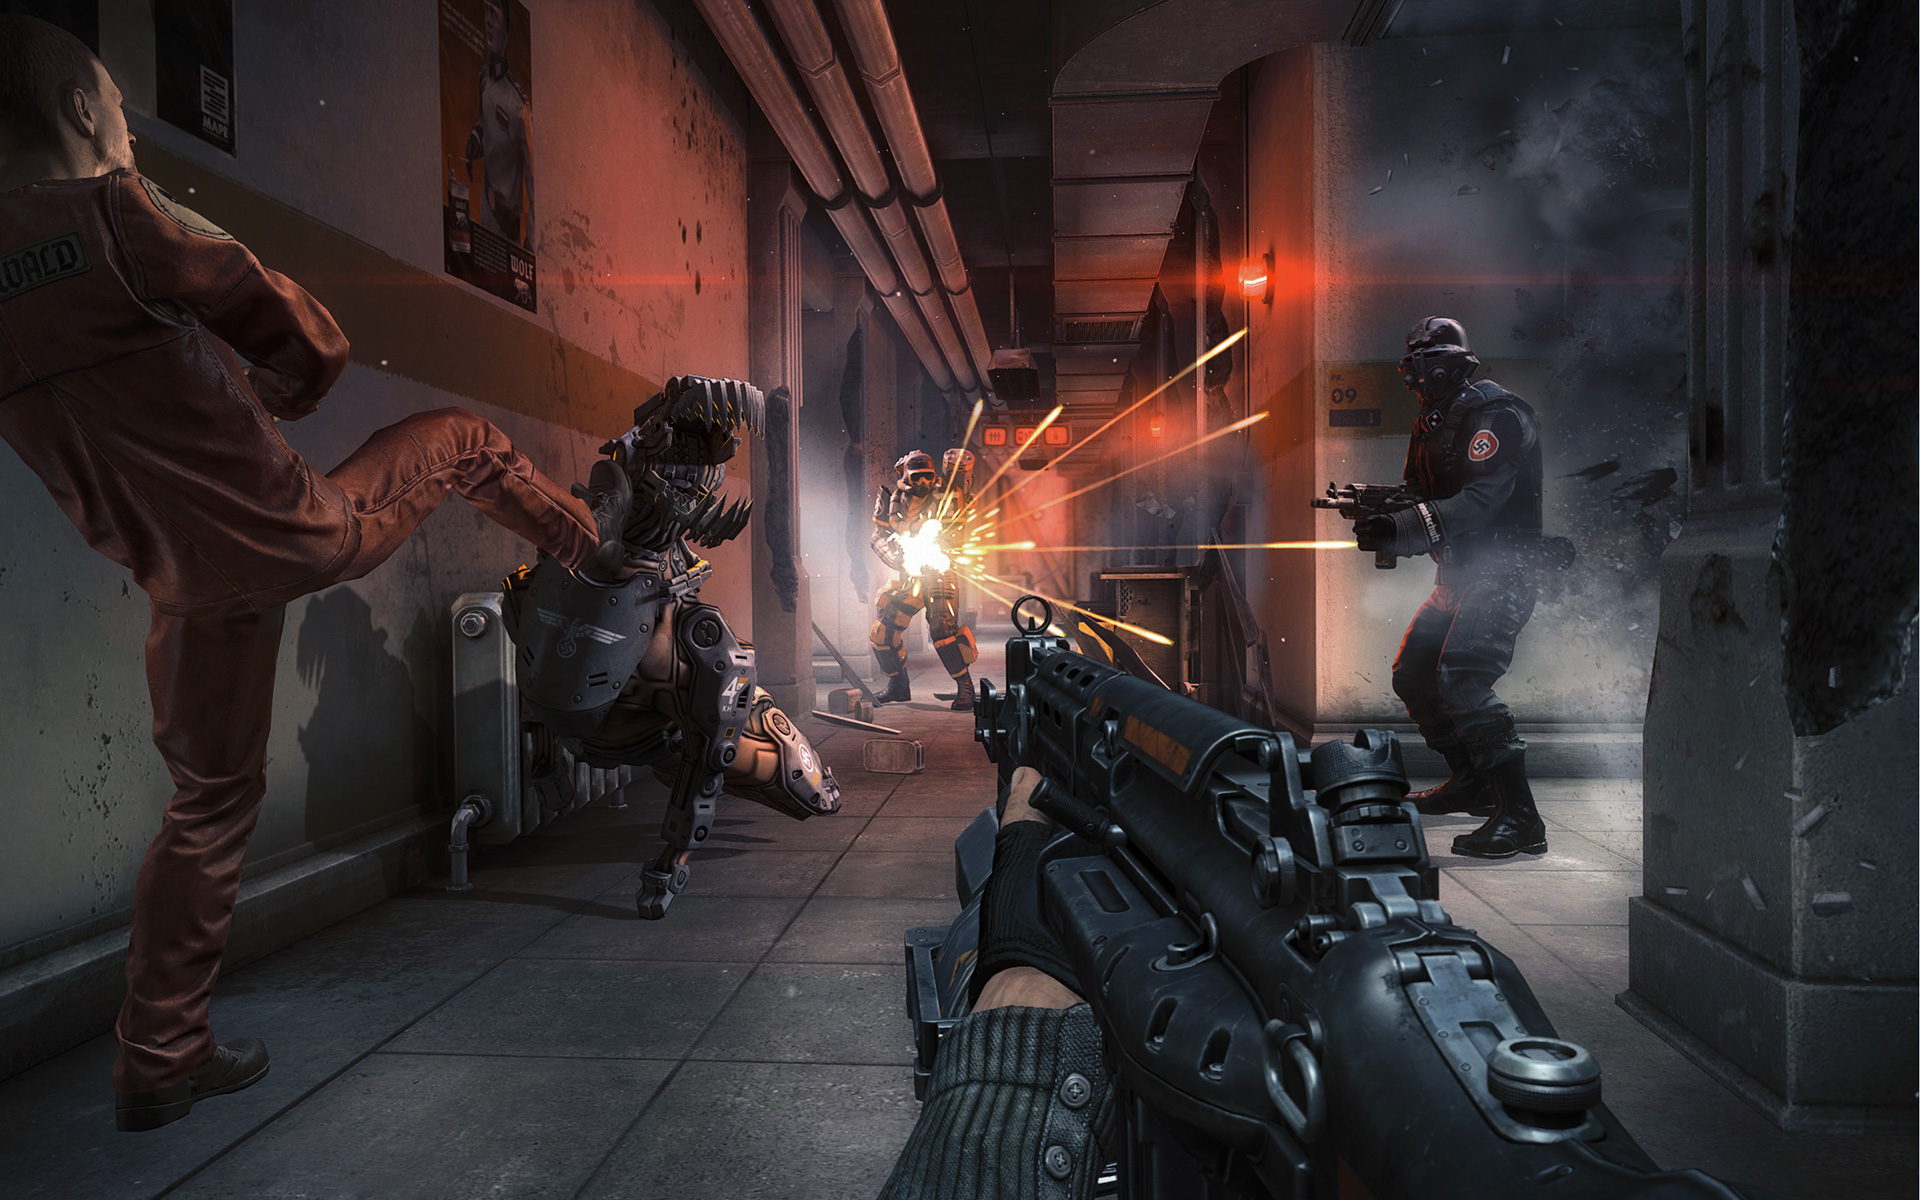 third person shooter video game - HD1920×1200